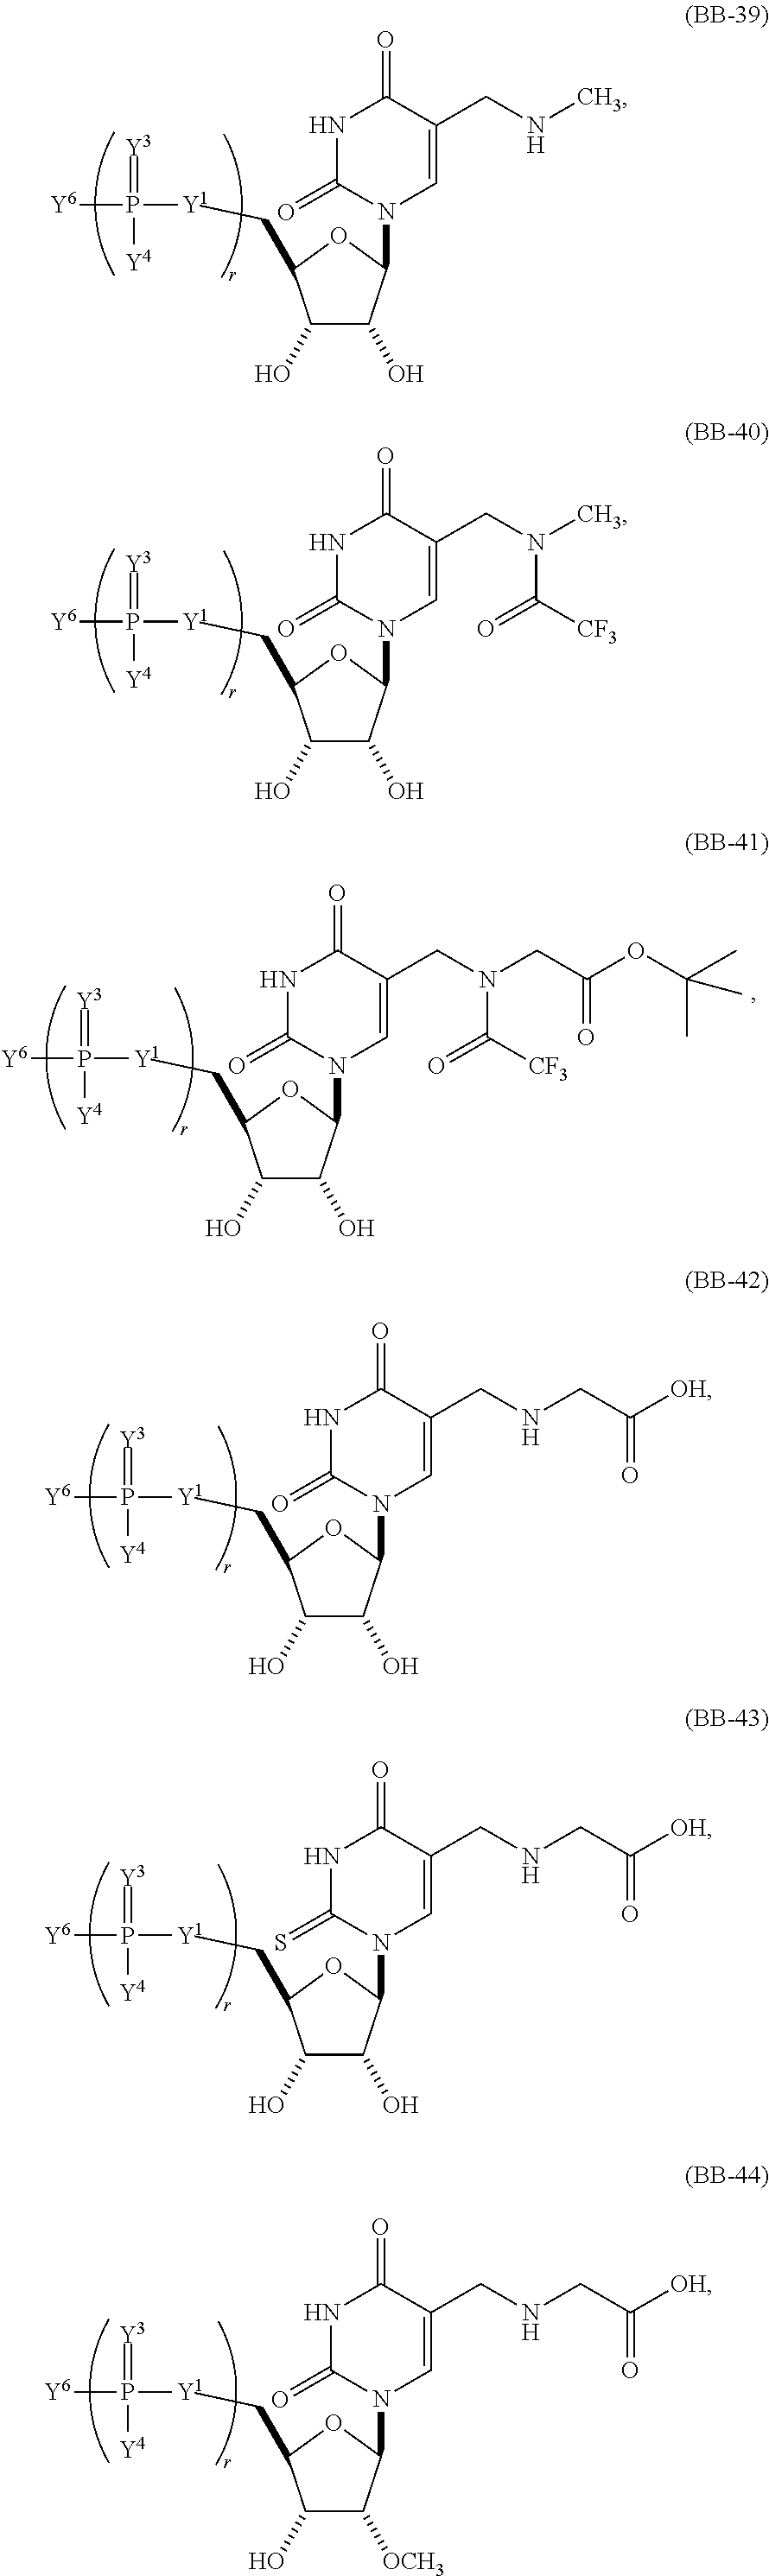 us9254311b2 modified polynucleotides for the production of rh google com